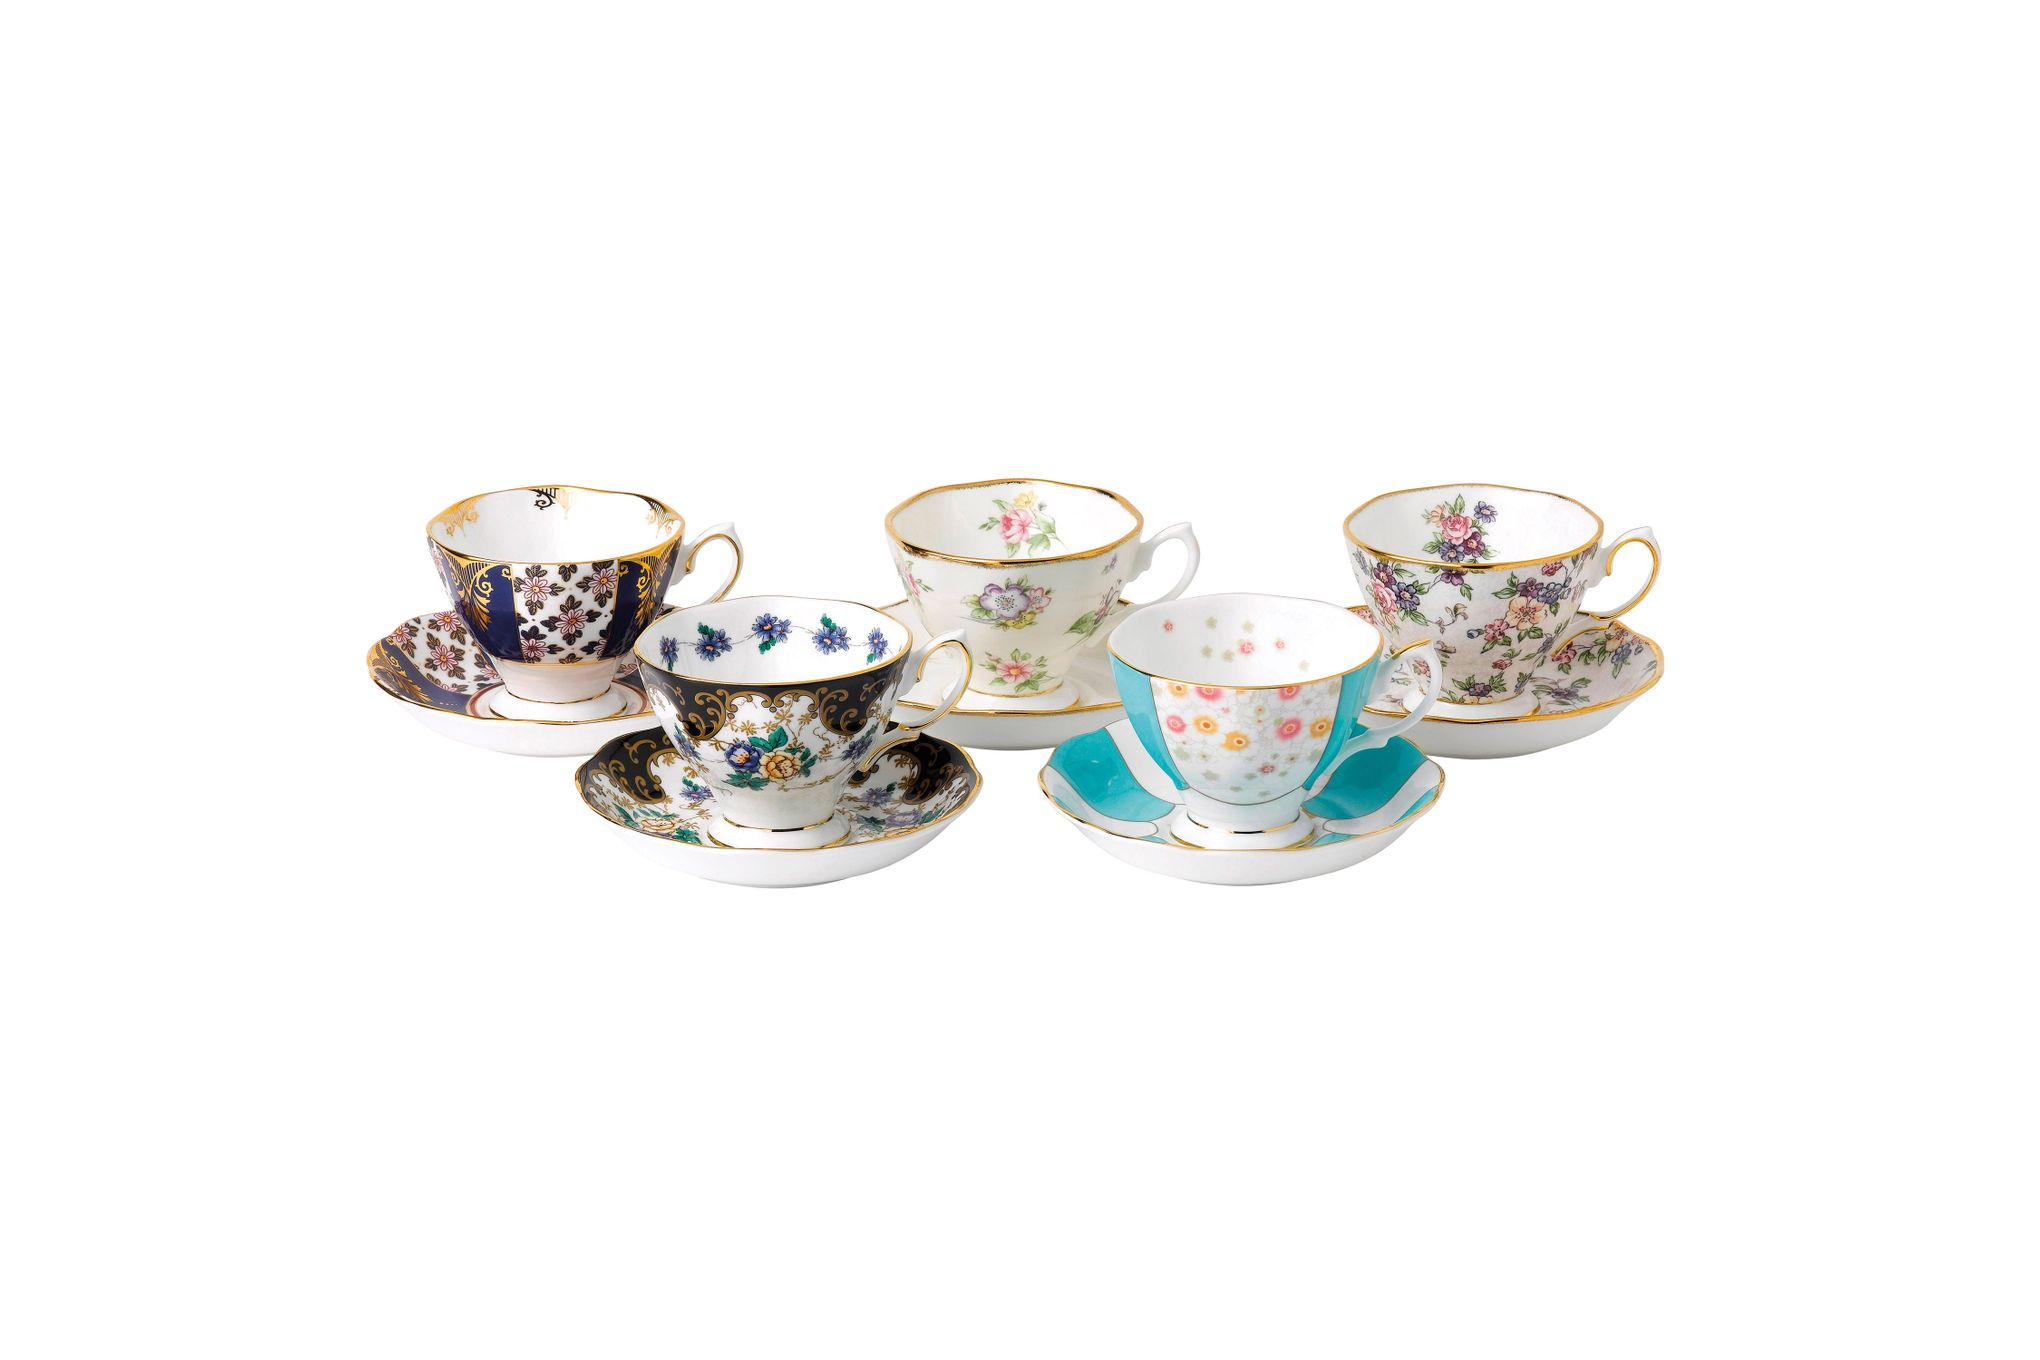 Royal Albert 100 Years of Royal Albert Set of Teacups and Saucers Boxed Set of 5, 1900-1940 thumb 1